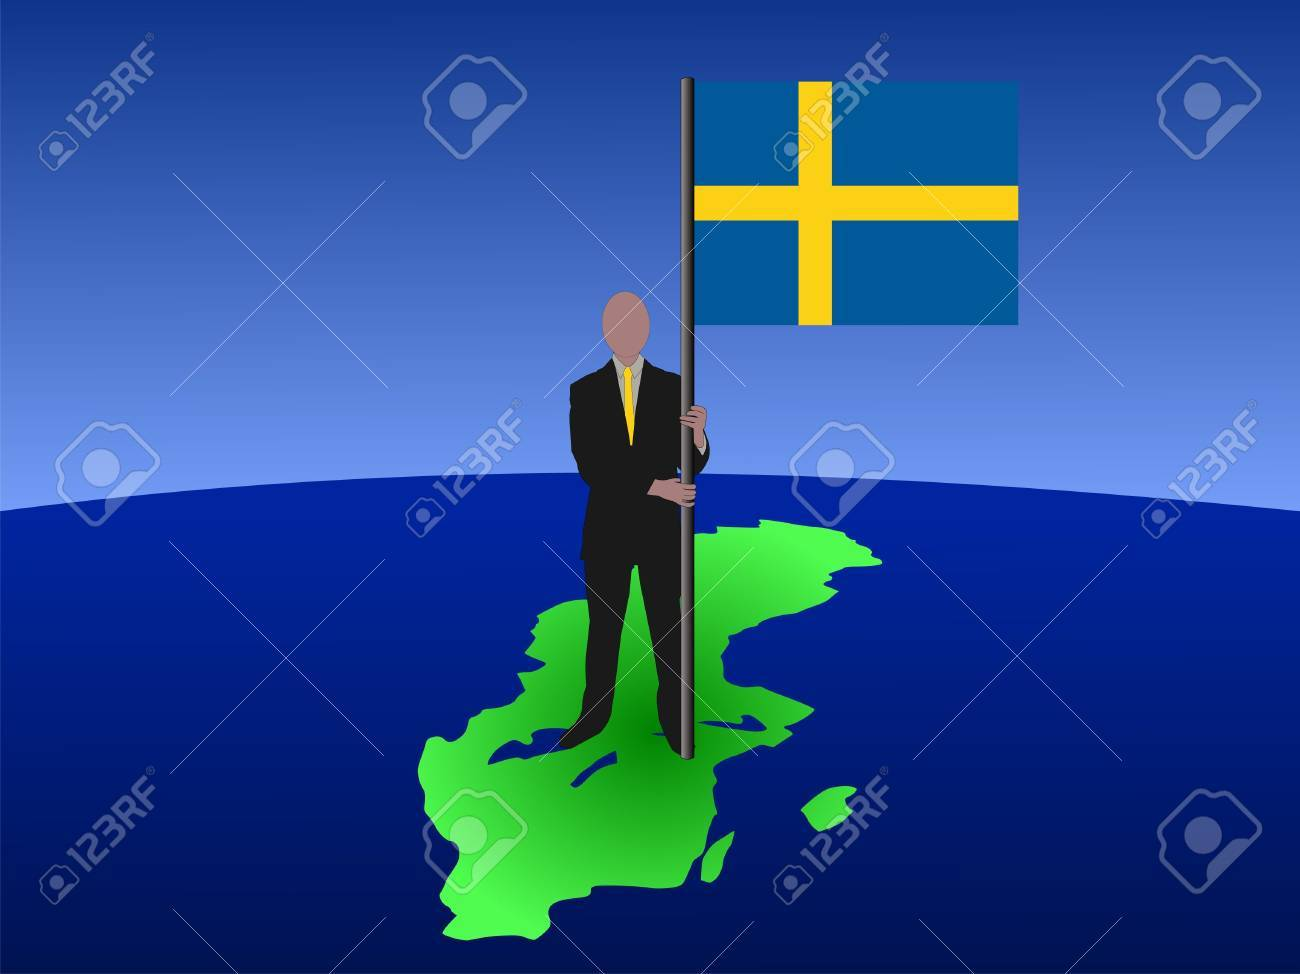 business man standing on map of sweden with flag Stock Photo - 2563743